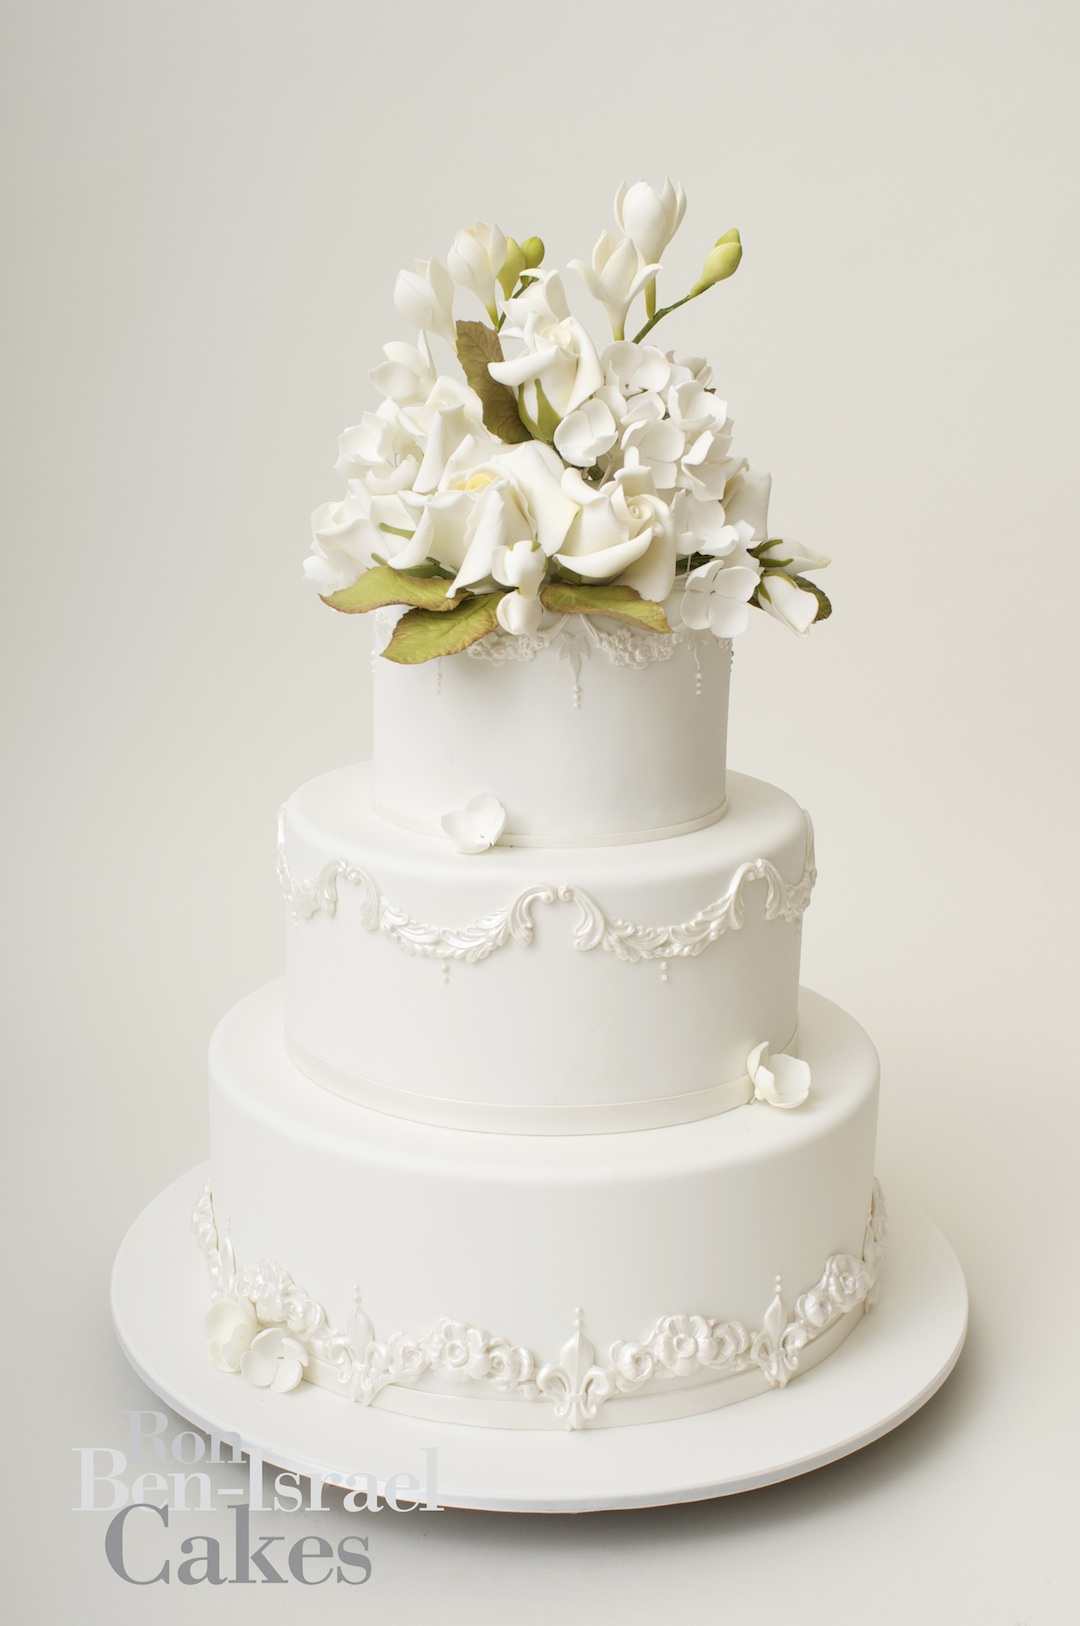 wedding cake inspiration Ron Ben Isreal wedding cakes